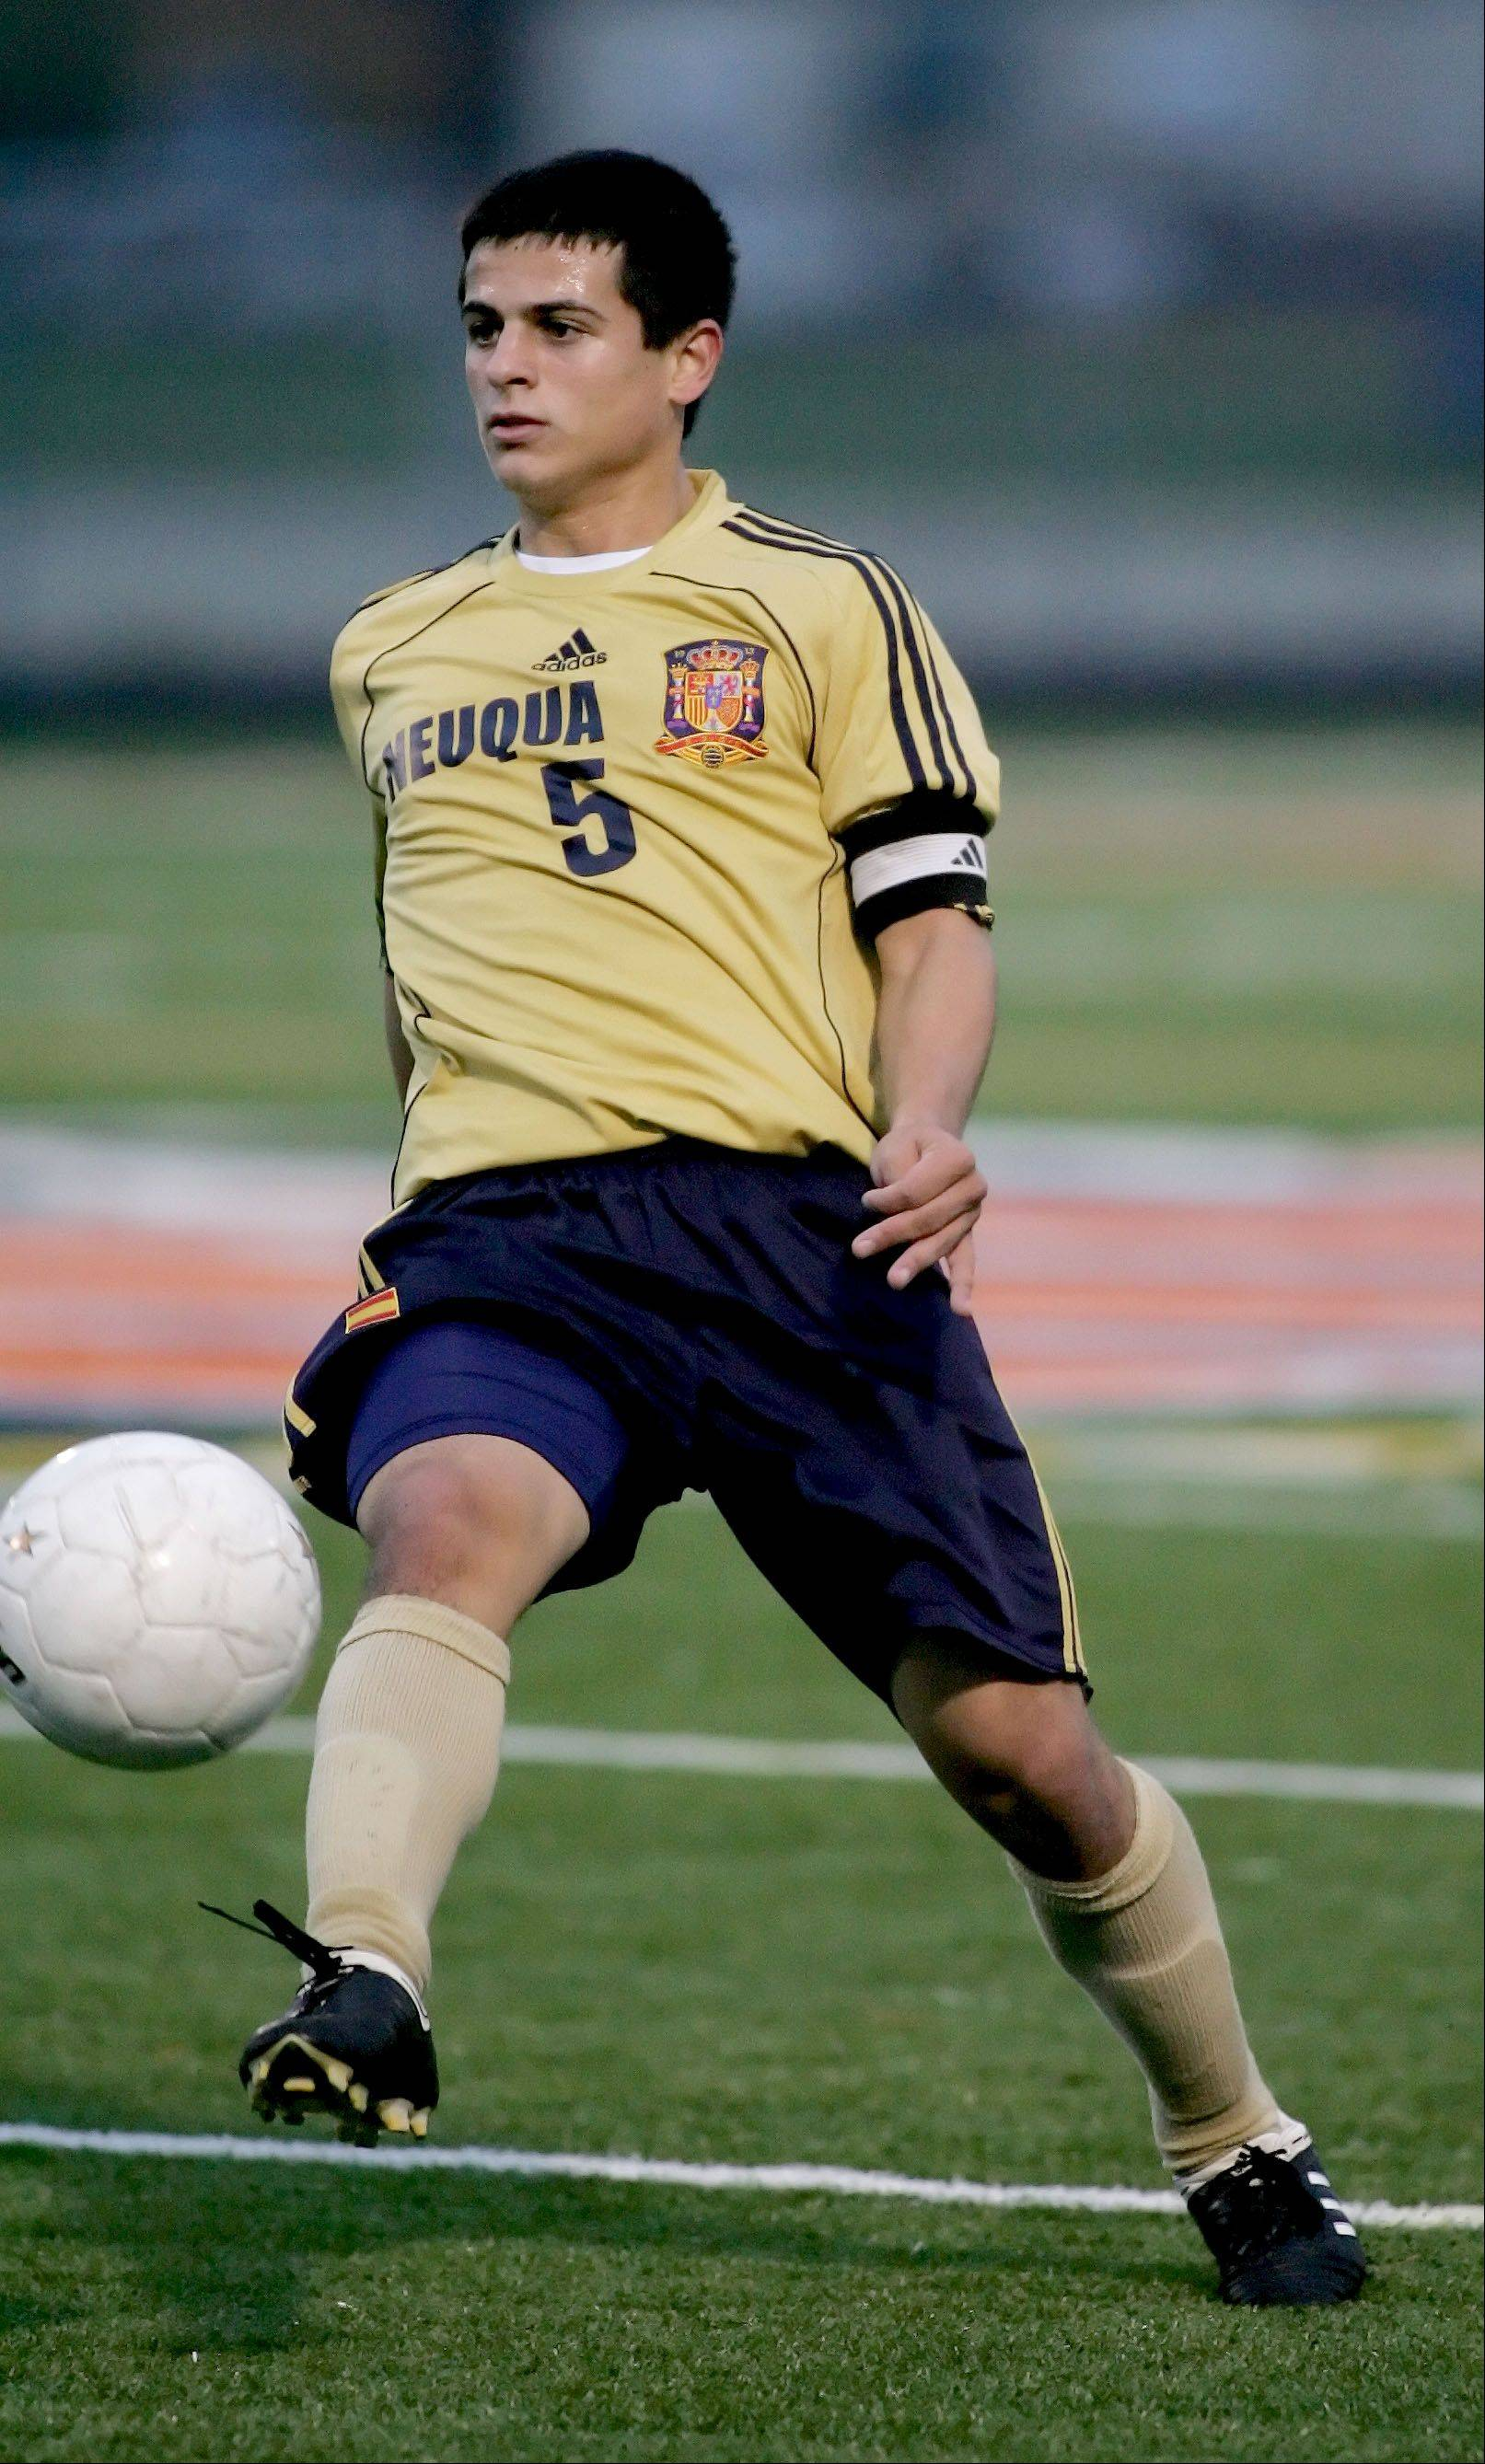 Bryan Ciesiulka played for Neuqua Valley in high school.